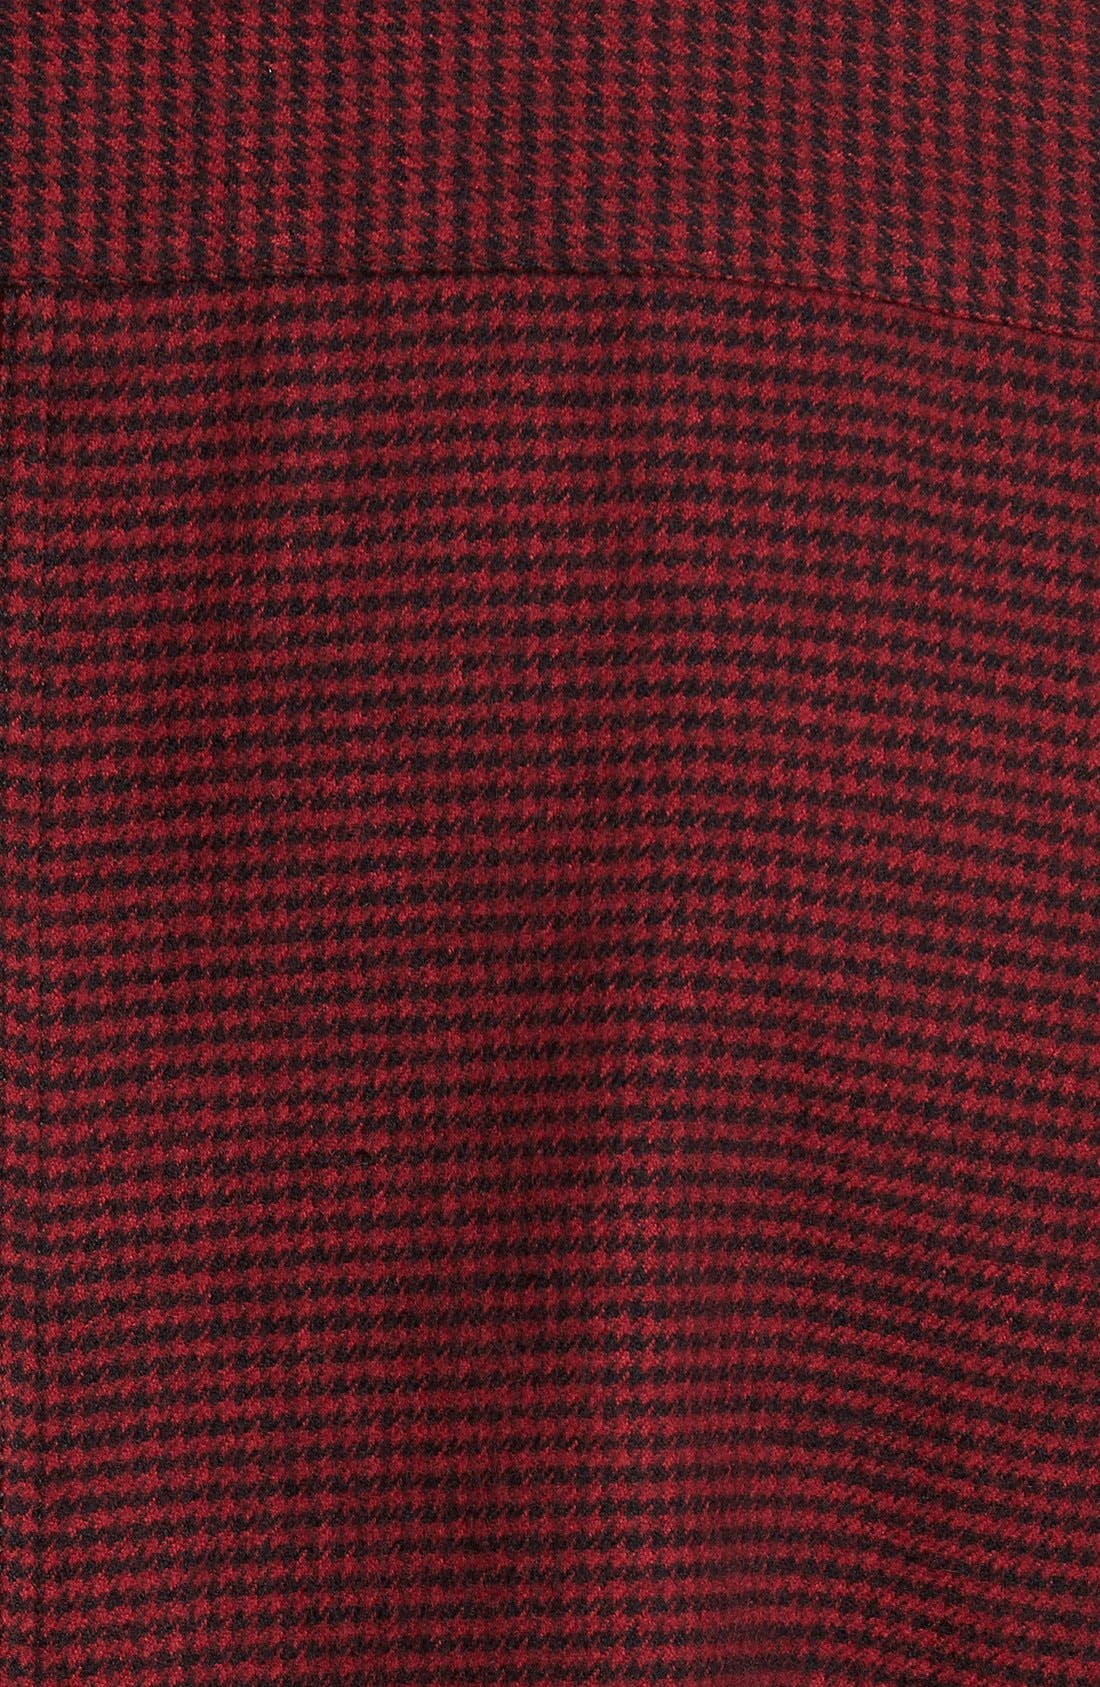 Parker Slim Fit Houndstooth Flannel Shirt,                             Alternate thumbnail 4, color,                             616